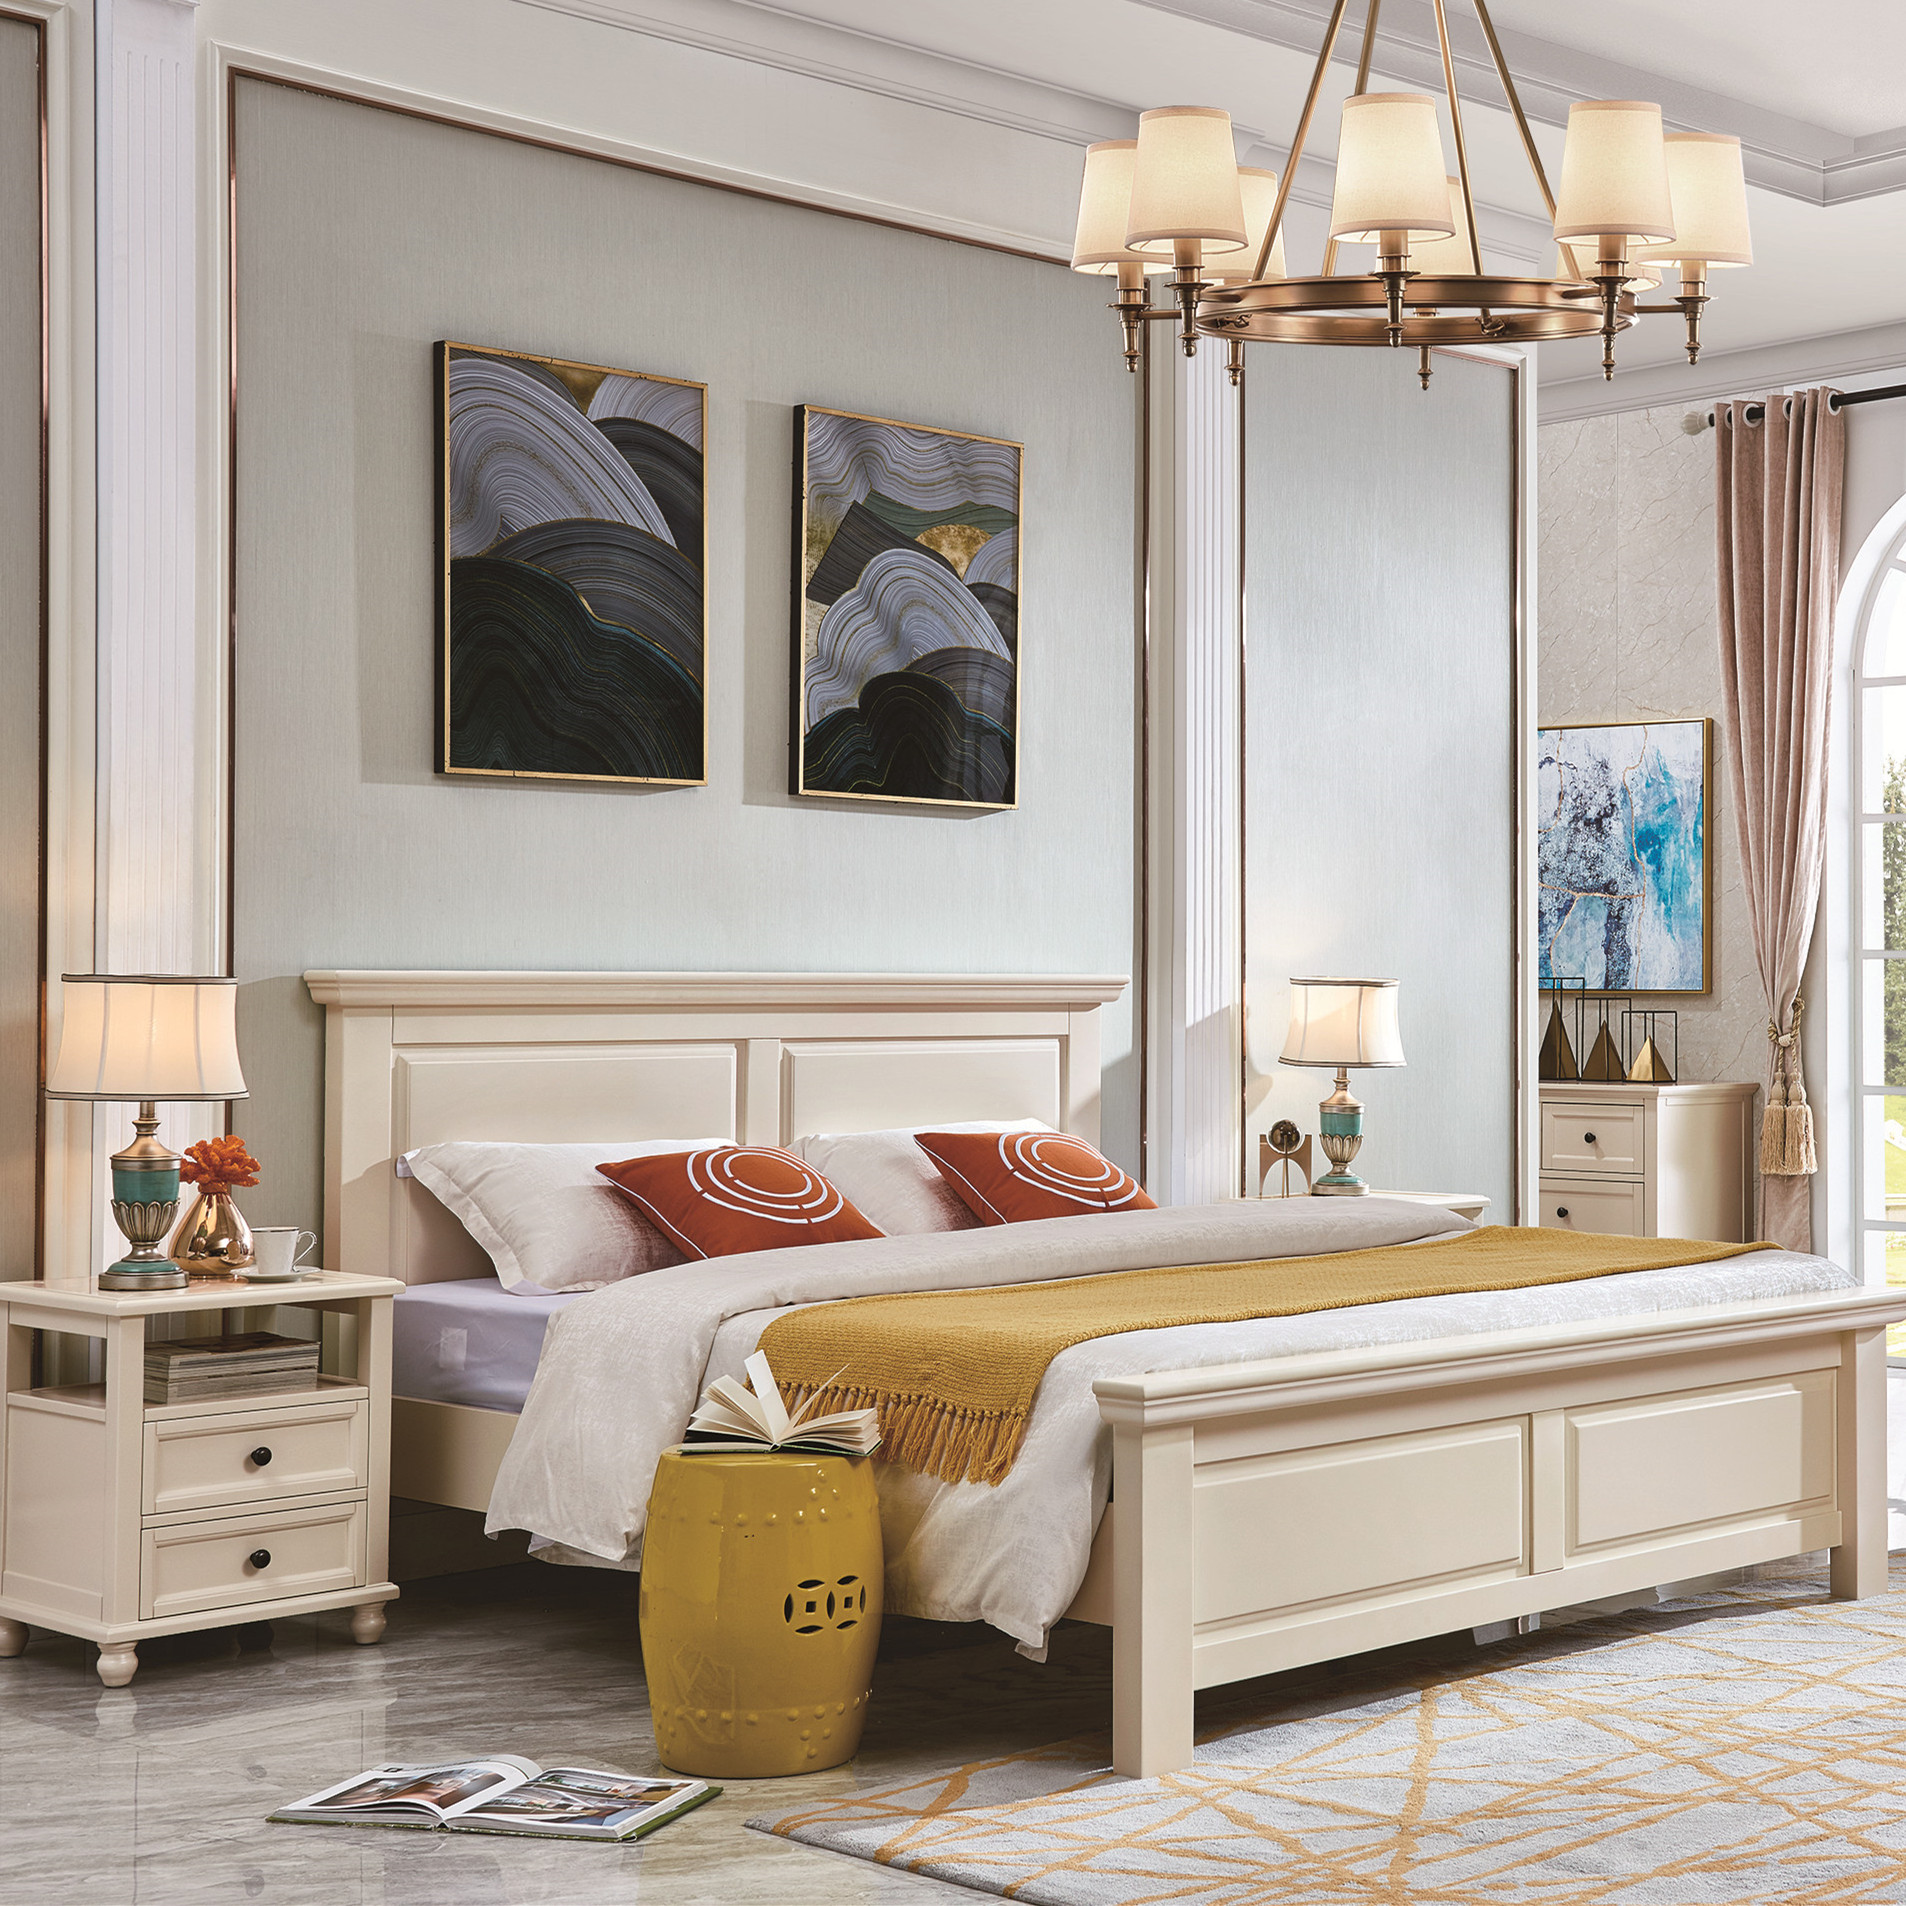 Classic Full Solid Wood White King Size Bedroom Furniture Sets Buy Antique Bedroom Furniture Set Antique Bedroom Furniture Sets Bedroom Furniture Set Luxury Product On Alibaba Com